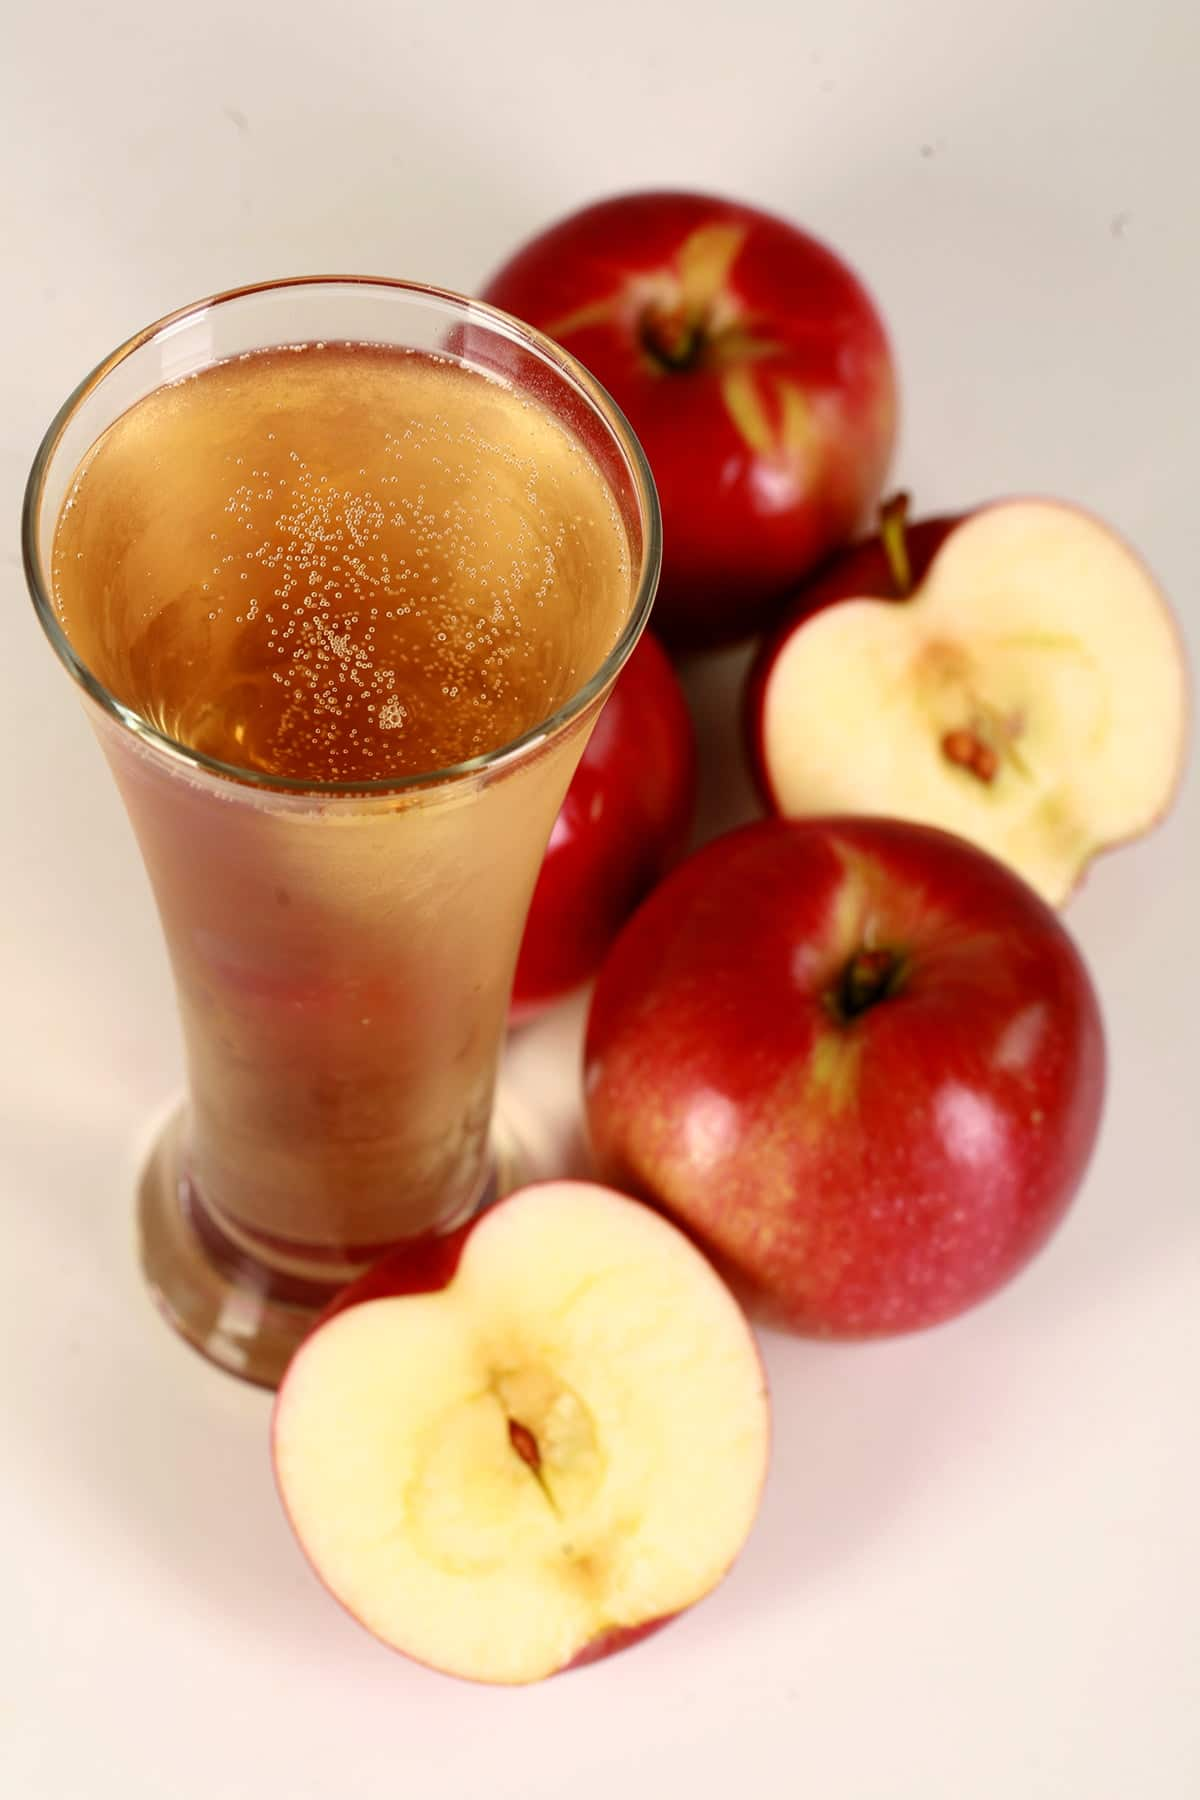 A glass of hard apple cider, surrounded by apples.